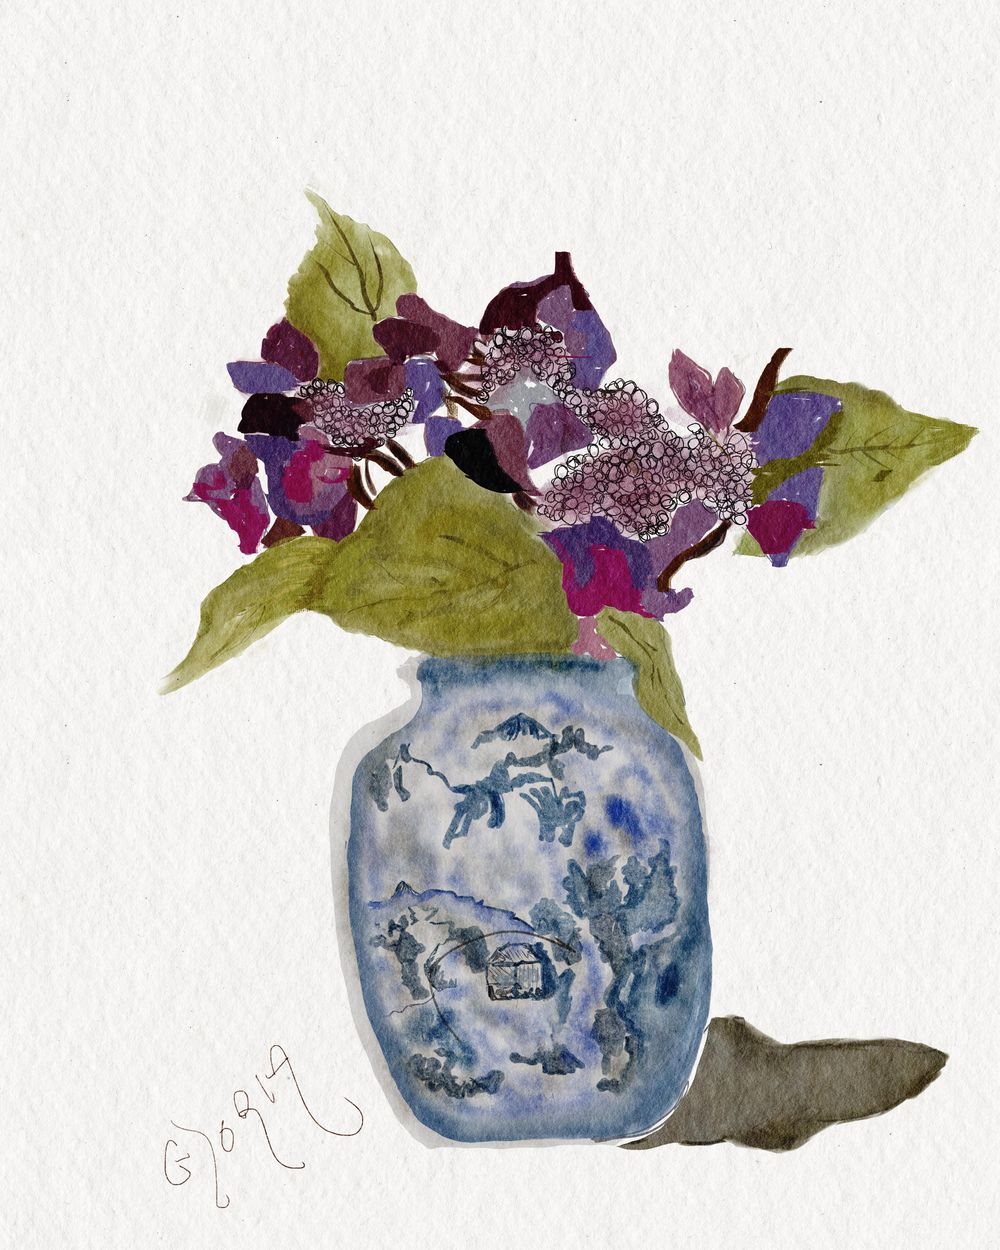 Ancient Chinese Vase - image 2 - student project